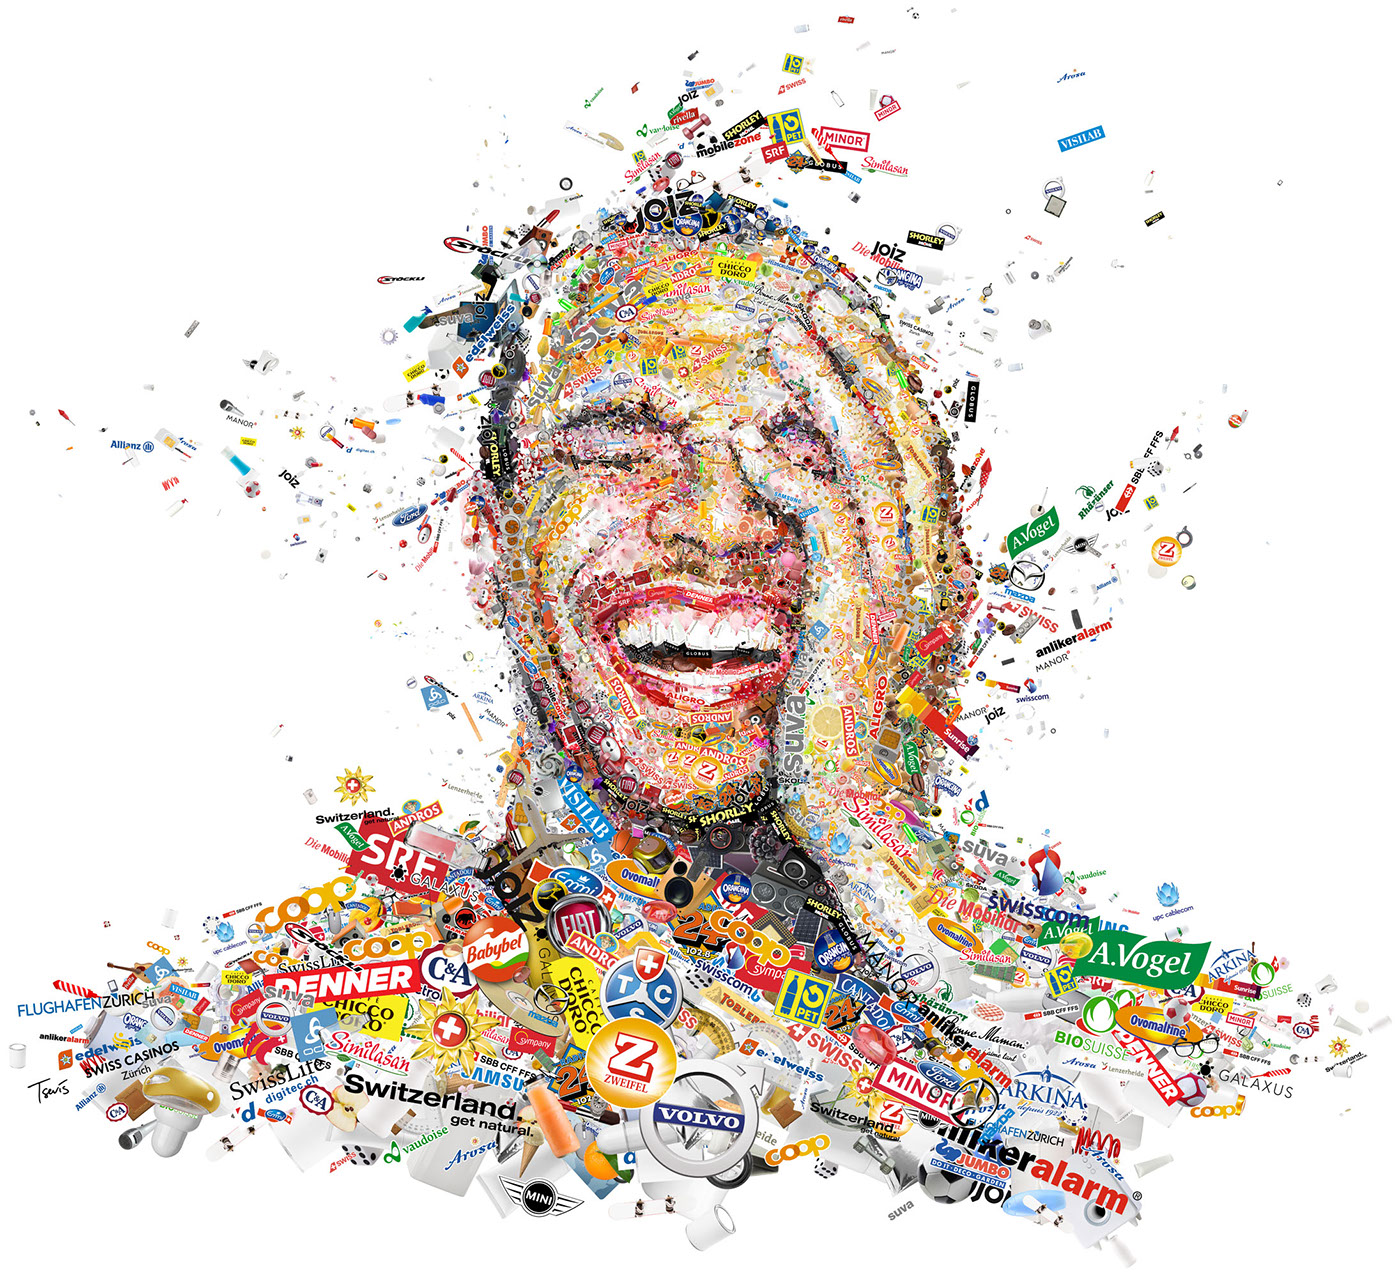 photomosaic,portrait,brands,Expression,marketing  ,Switzerland,Graphic designs,communication,computer graphics,posters,Billboards,laughing,crying